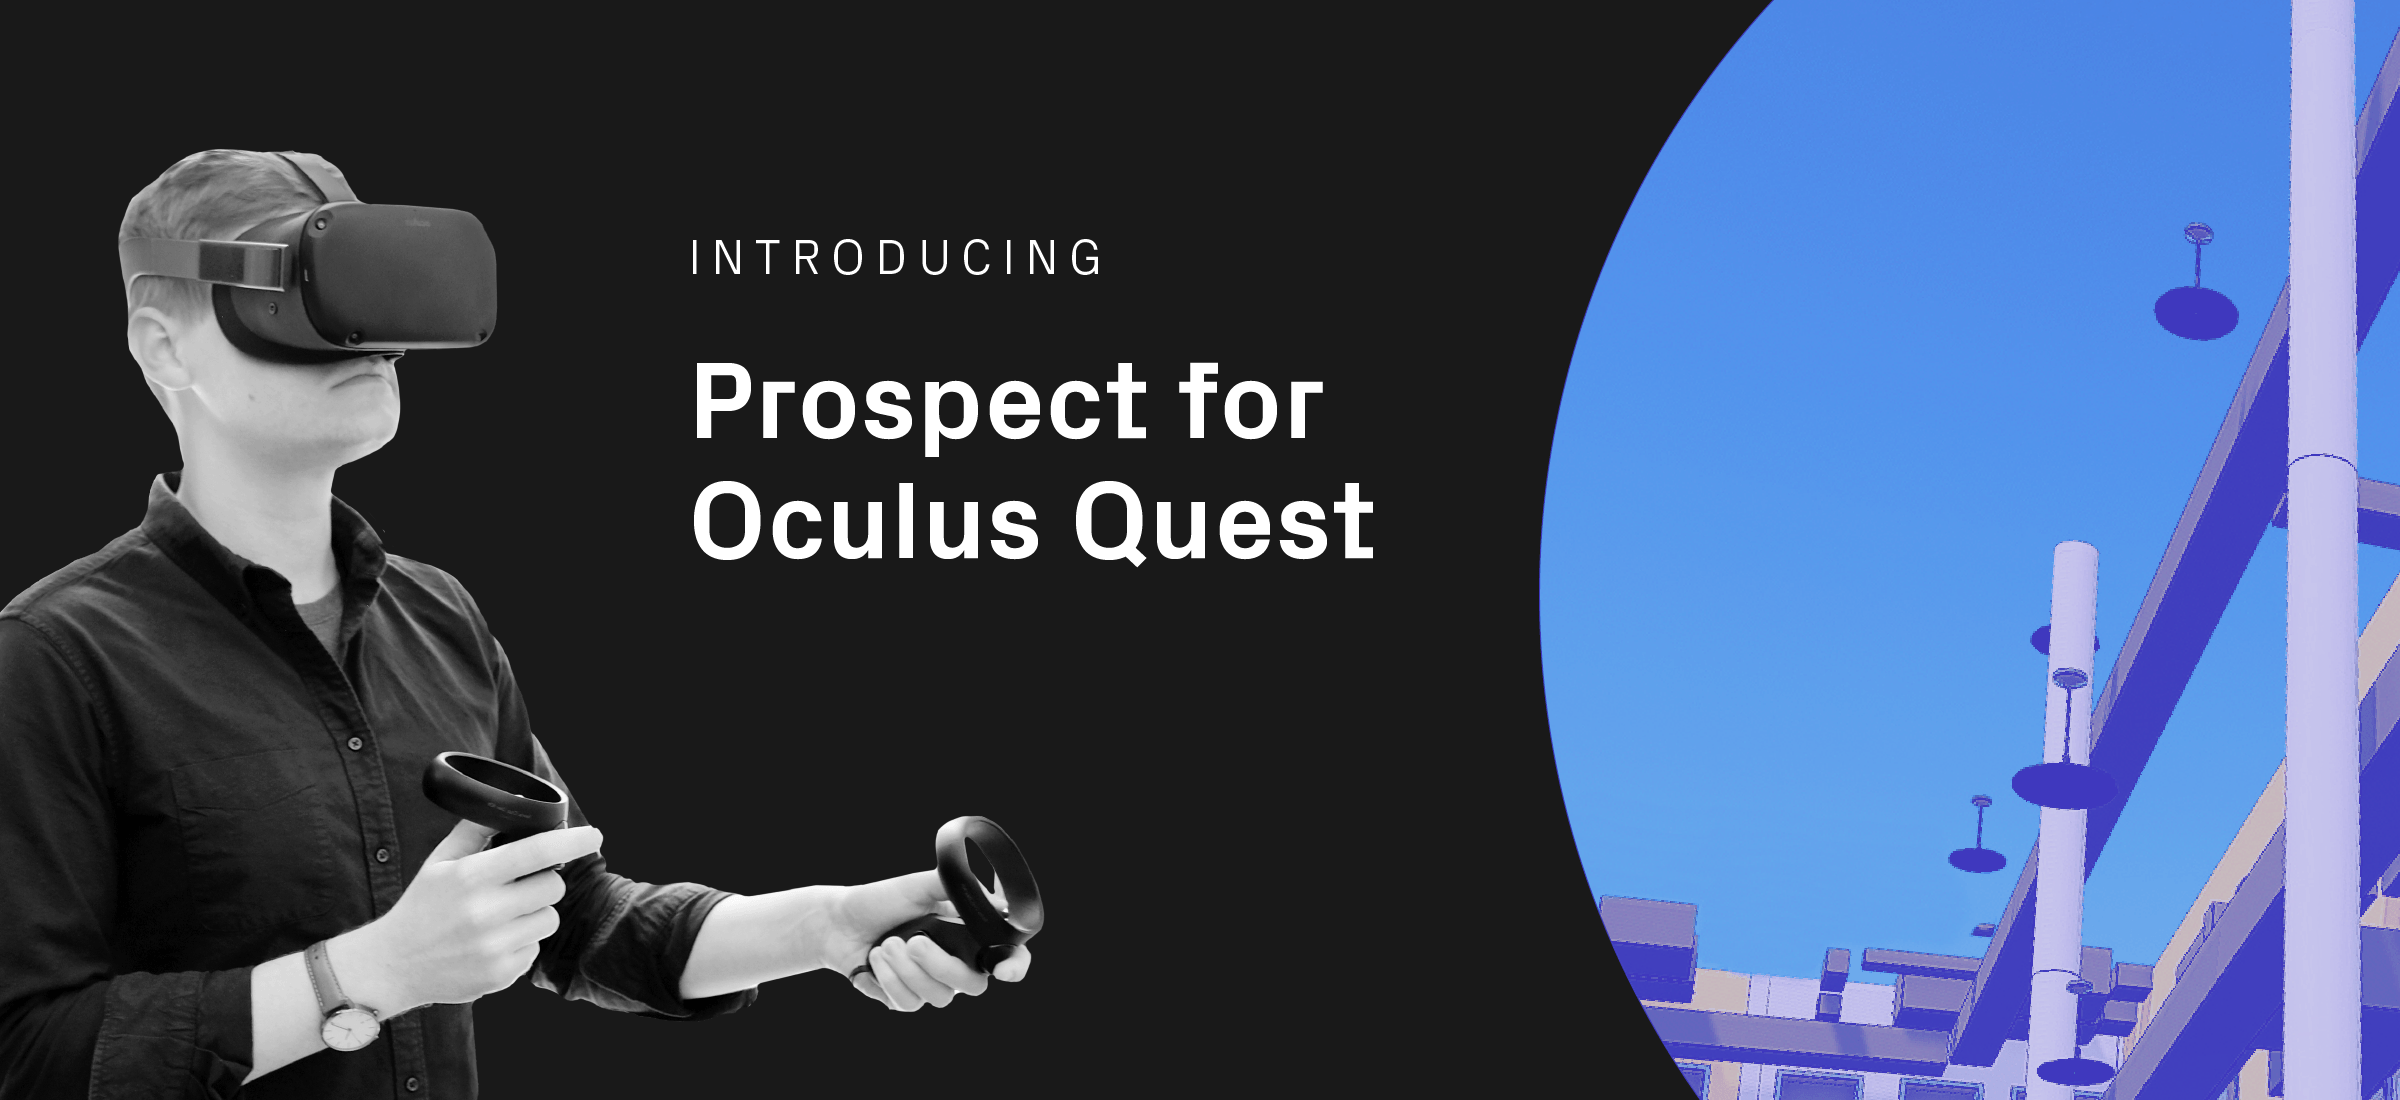 Prospect for Oculus Quest